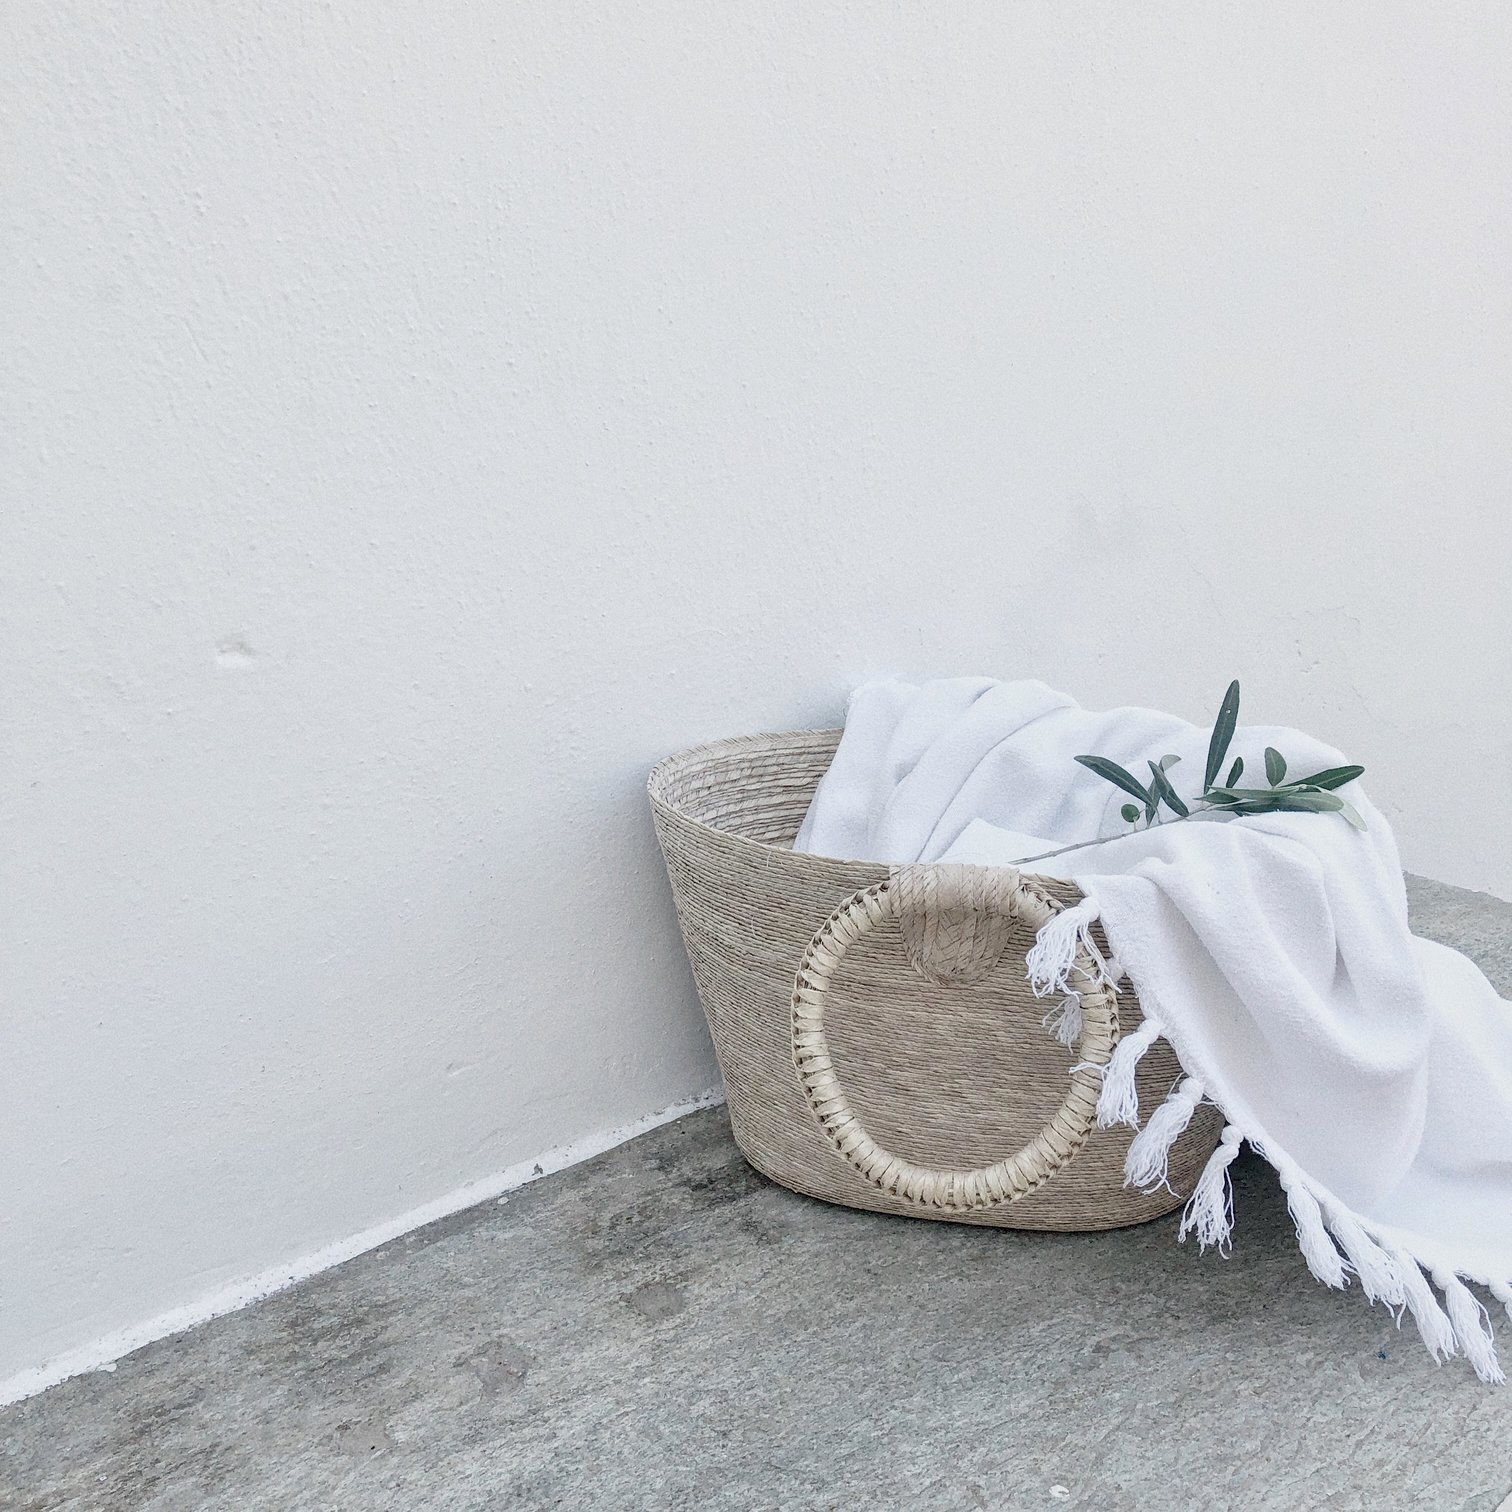 Woven basket bag with blanket